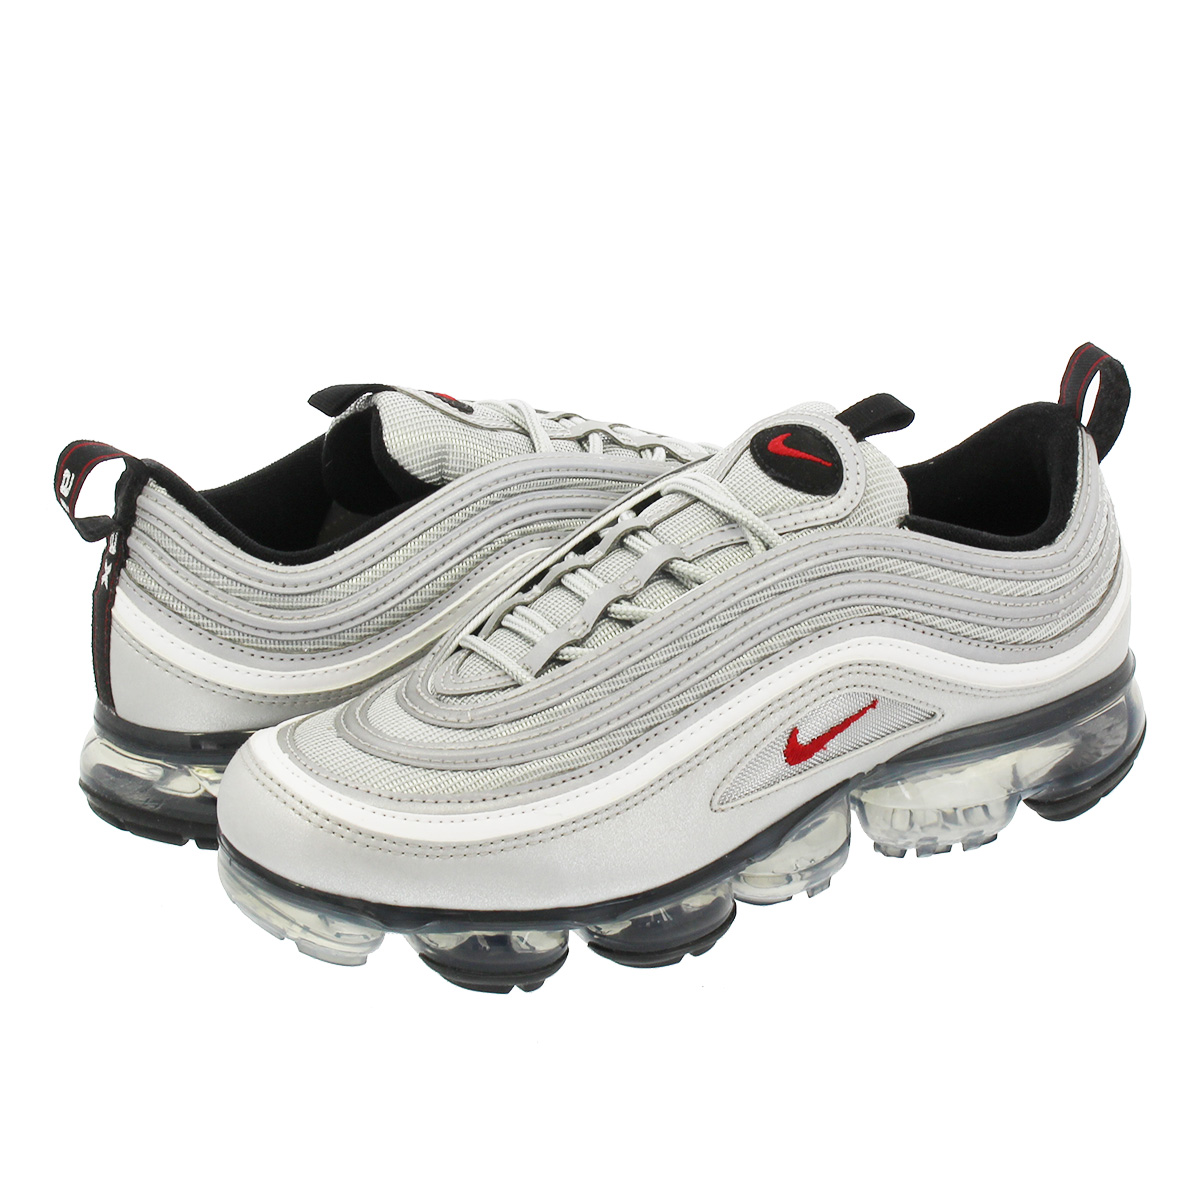 NIKE AIR VAPORMAX 97 ナイキ エア ヴェイパー マックス 97 METALLIC SILVER/VARSITY RED/WHITE/BLACK aj7291-002